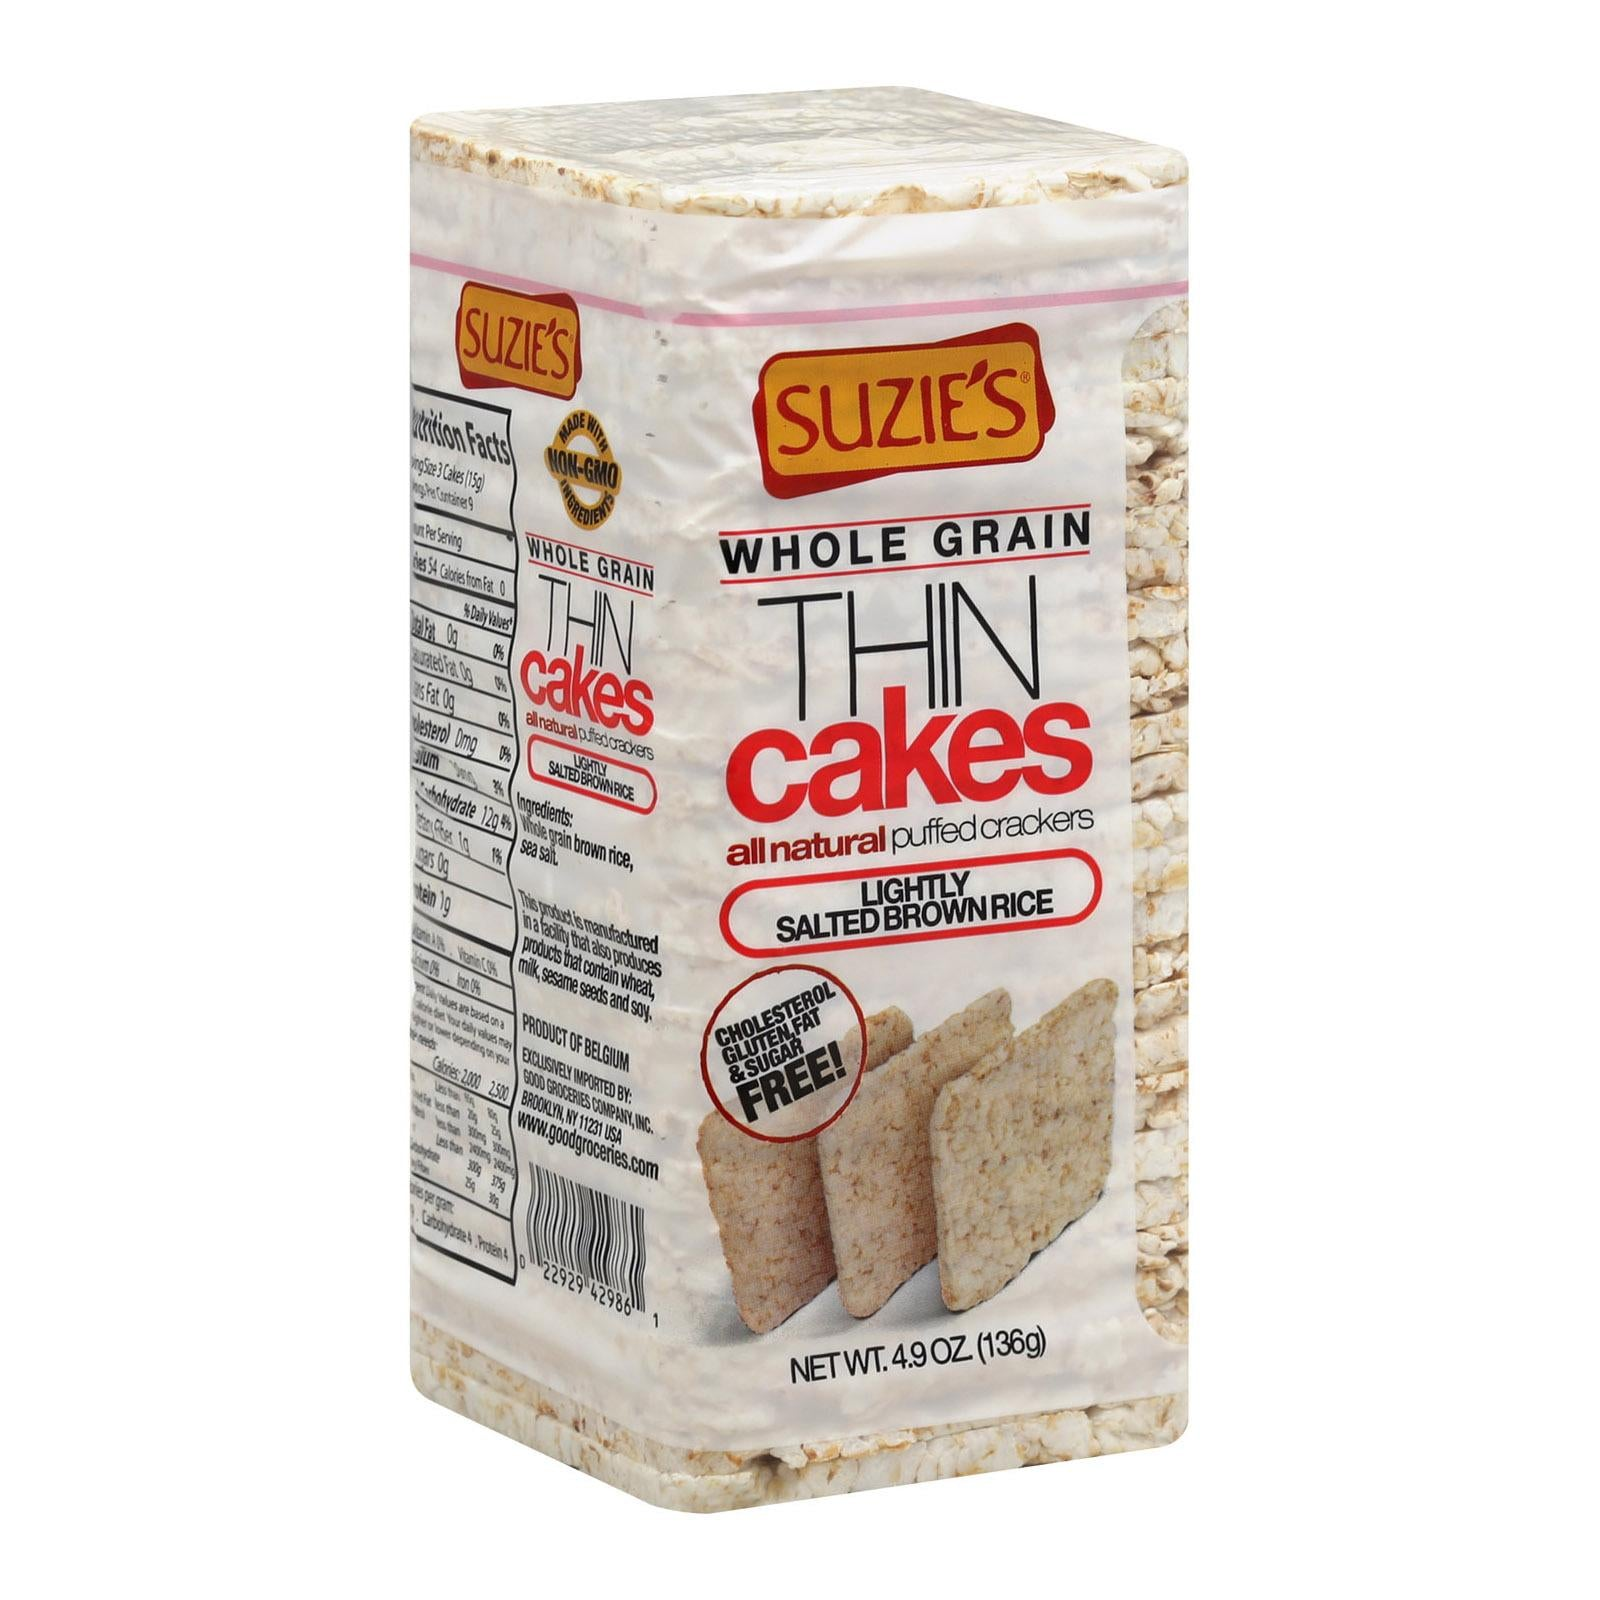 Suzie's Lightly Salted Thin Cakes